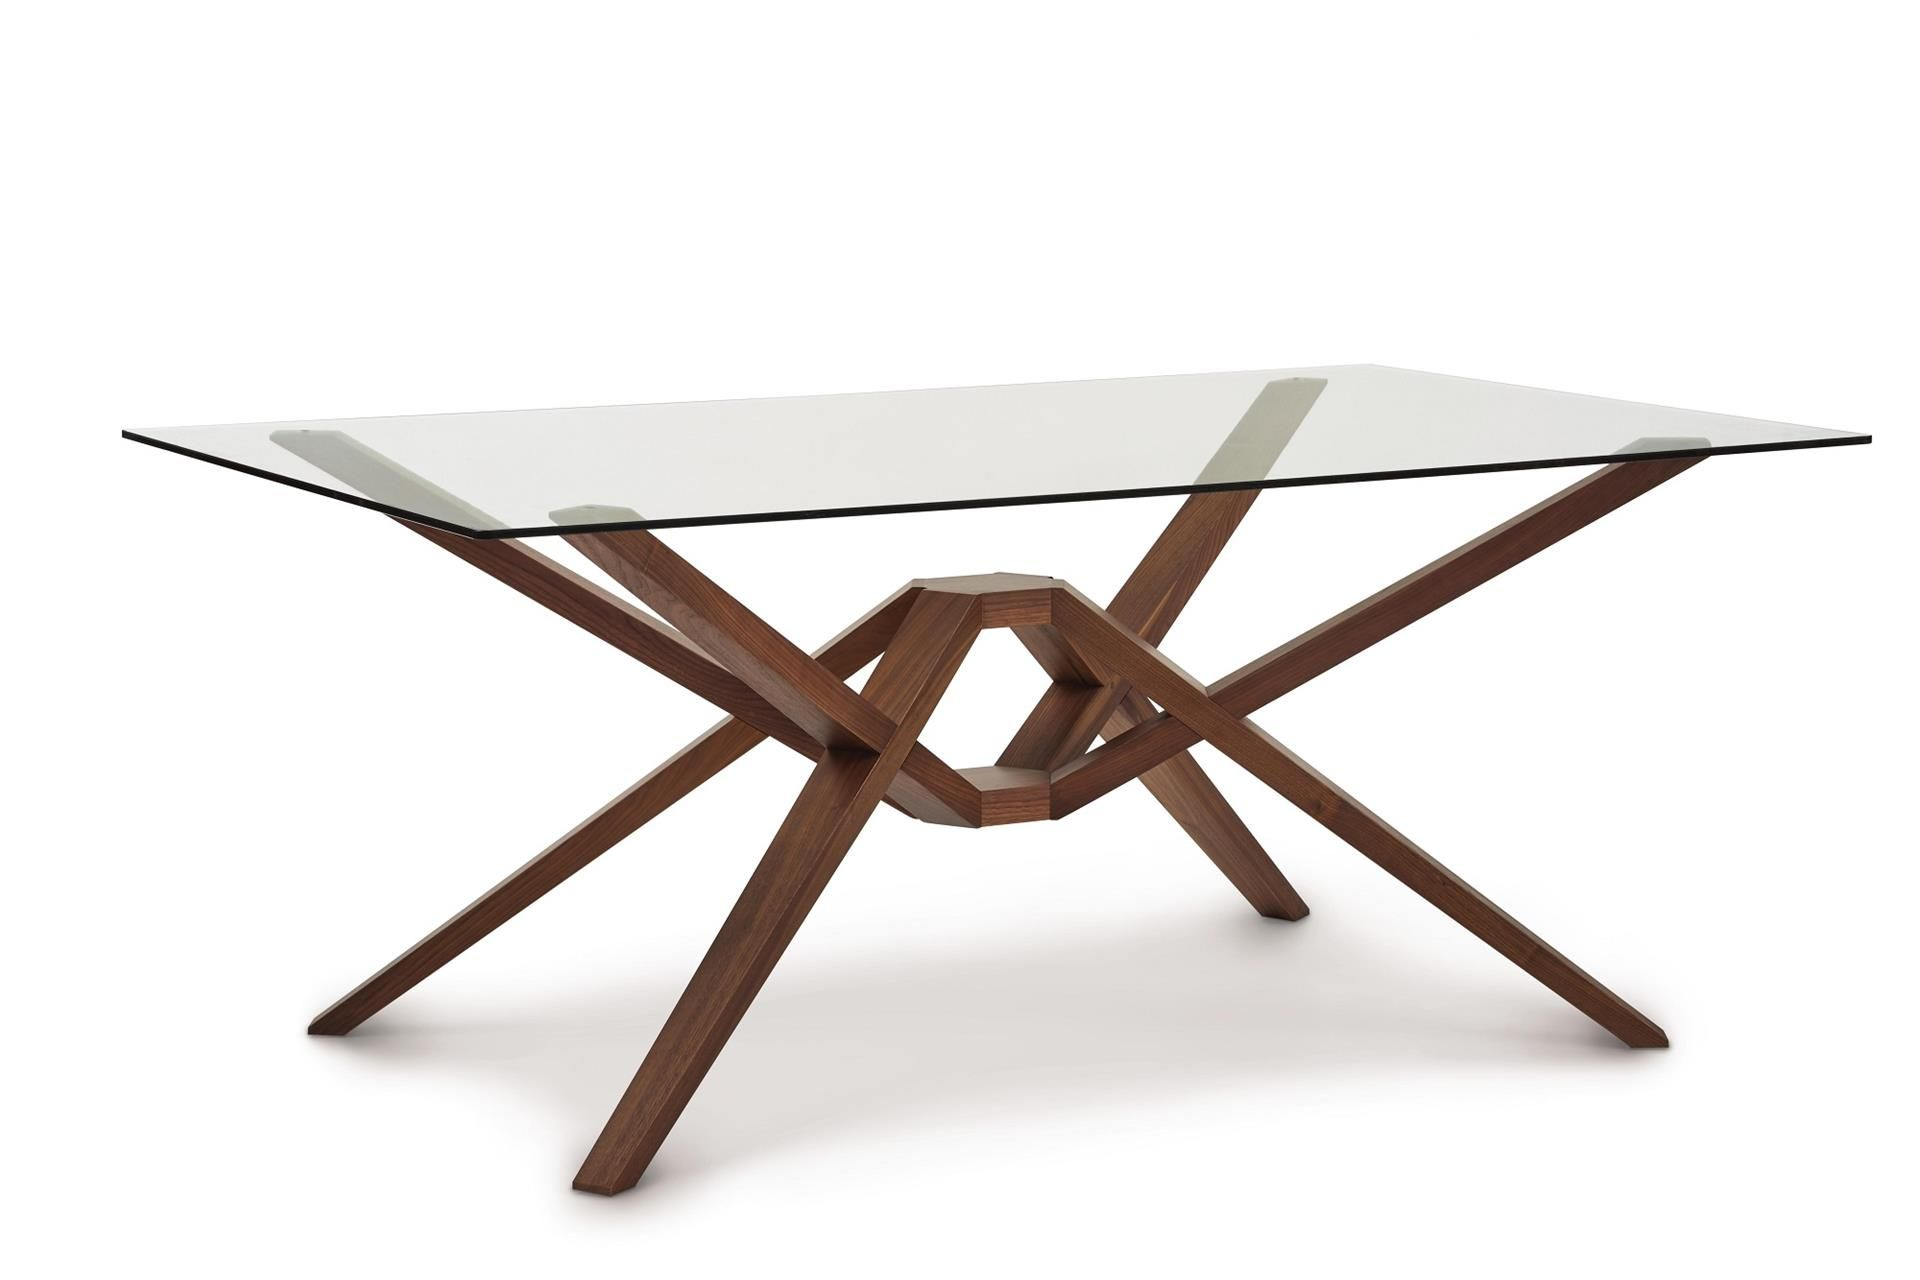 Exeter dining table with glass top by copeland furniture